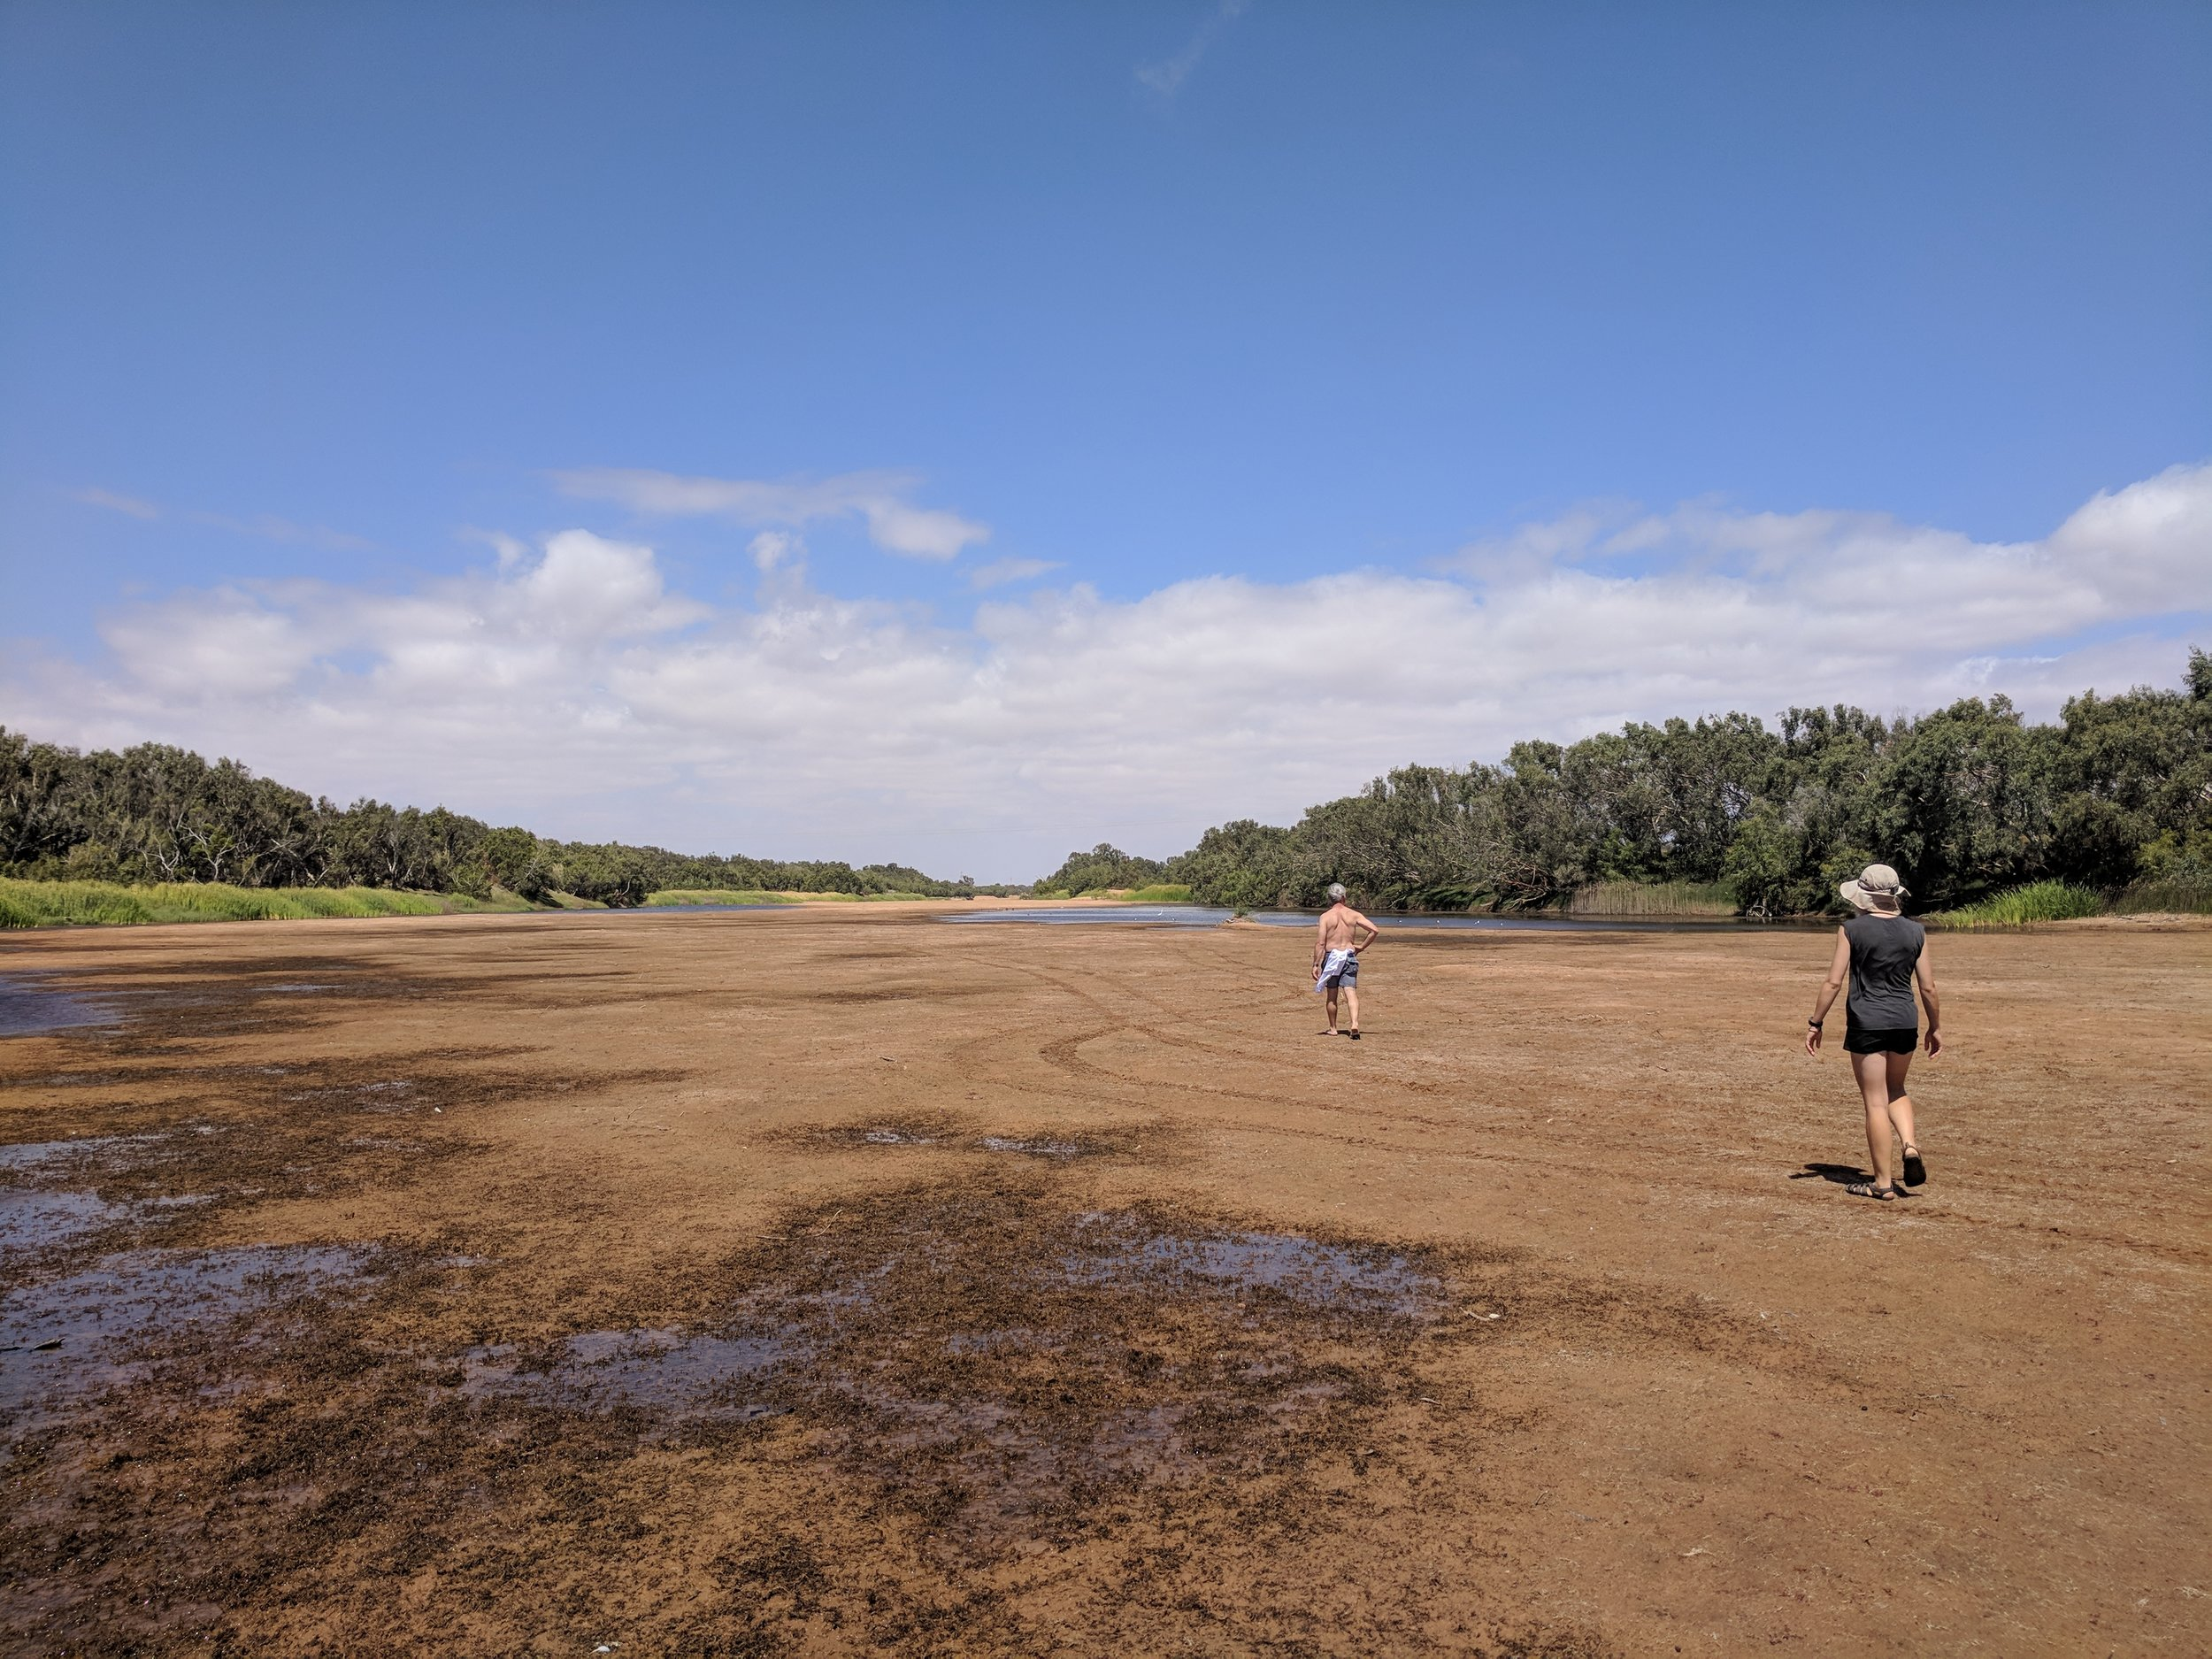 Chinamans Pool, an arm of the Gascoyne River which supplied the town with water and a swimming hole over the years. Father and daughter modelling team strut their stuff.